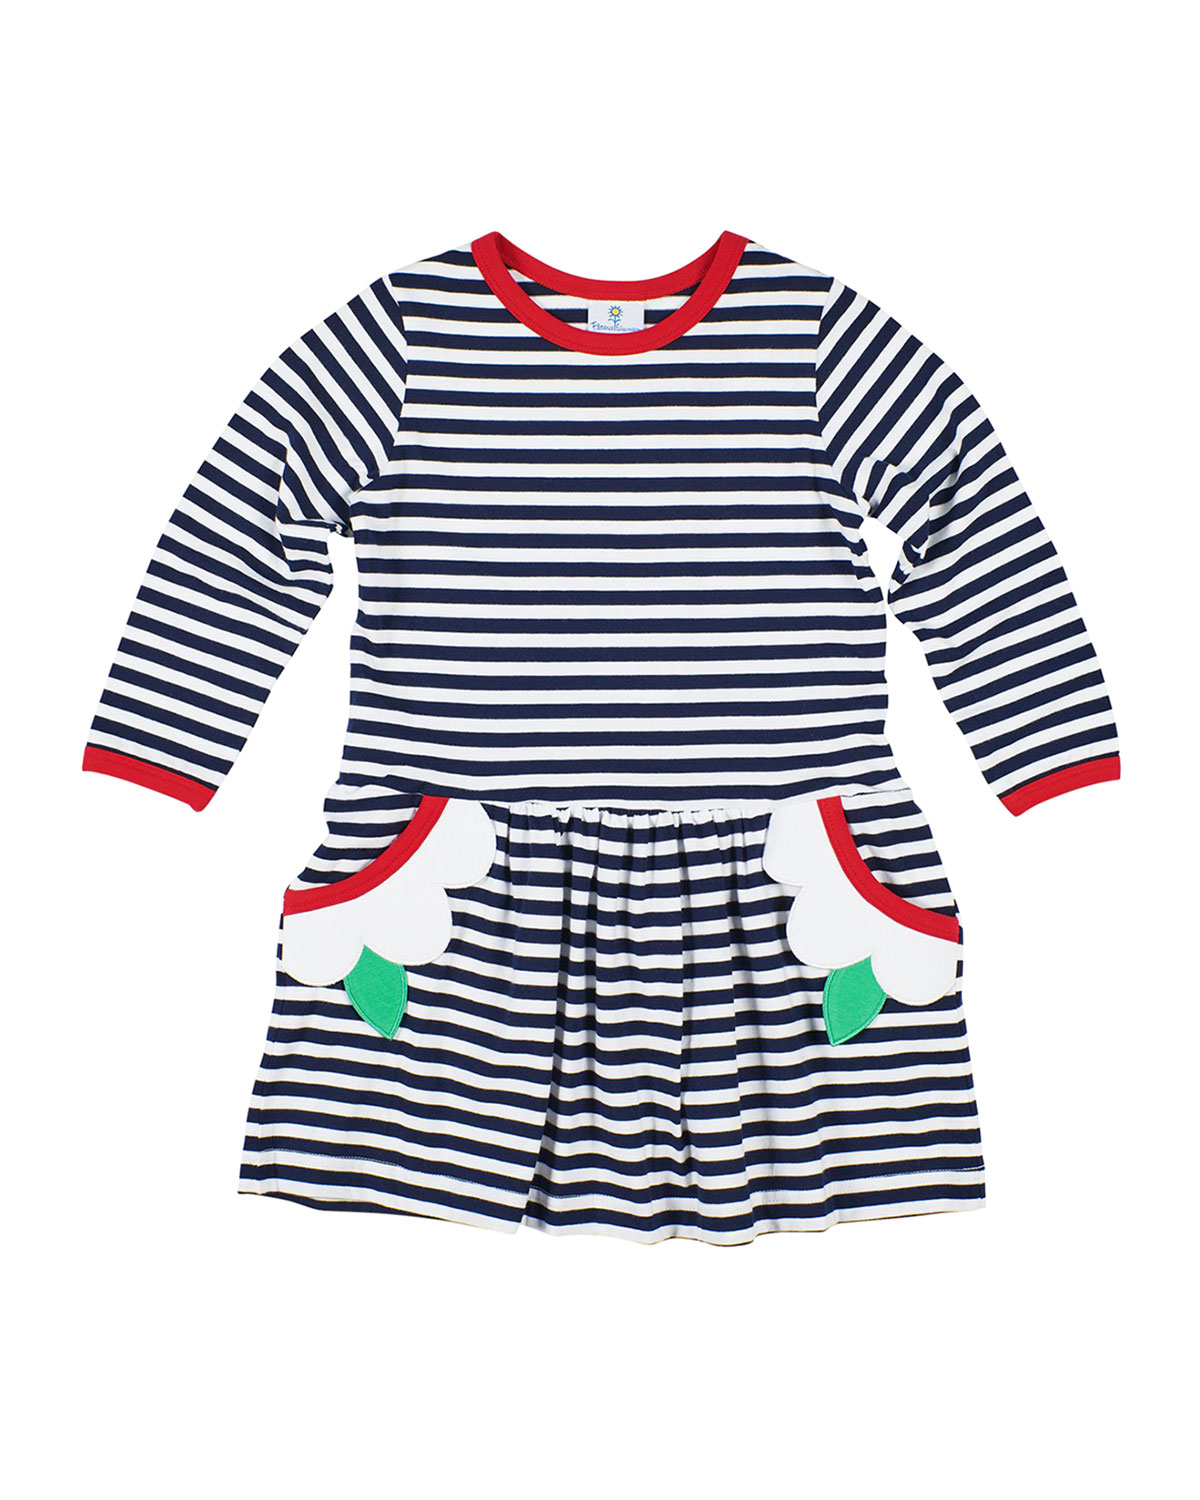 Florence Eiseman Girl's Stripe Knit Flower Dress, Size 2-6X